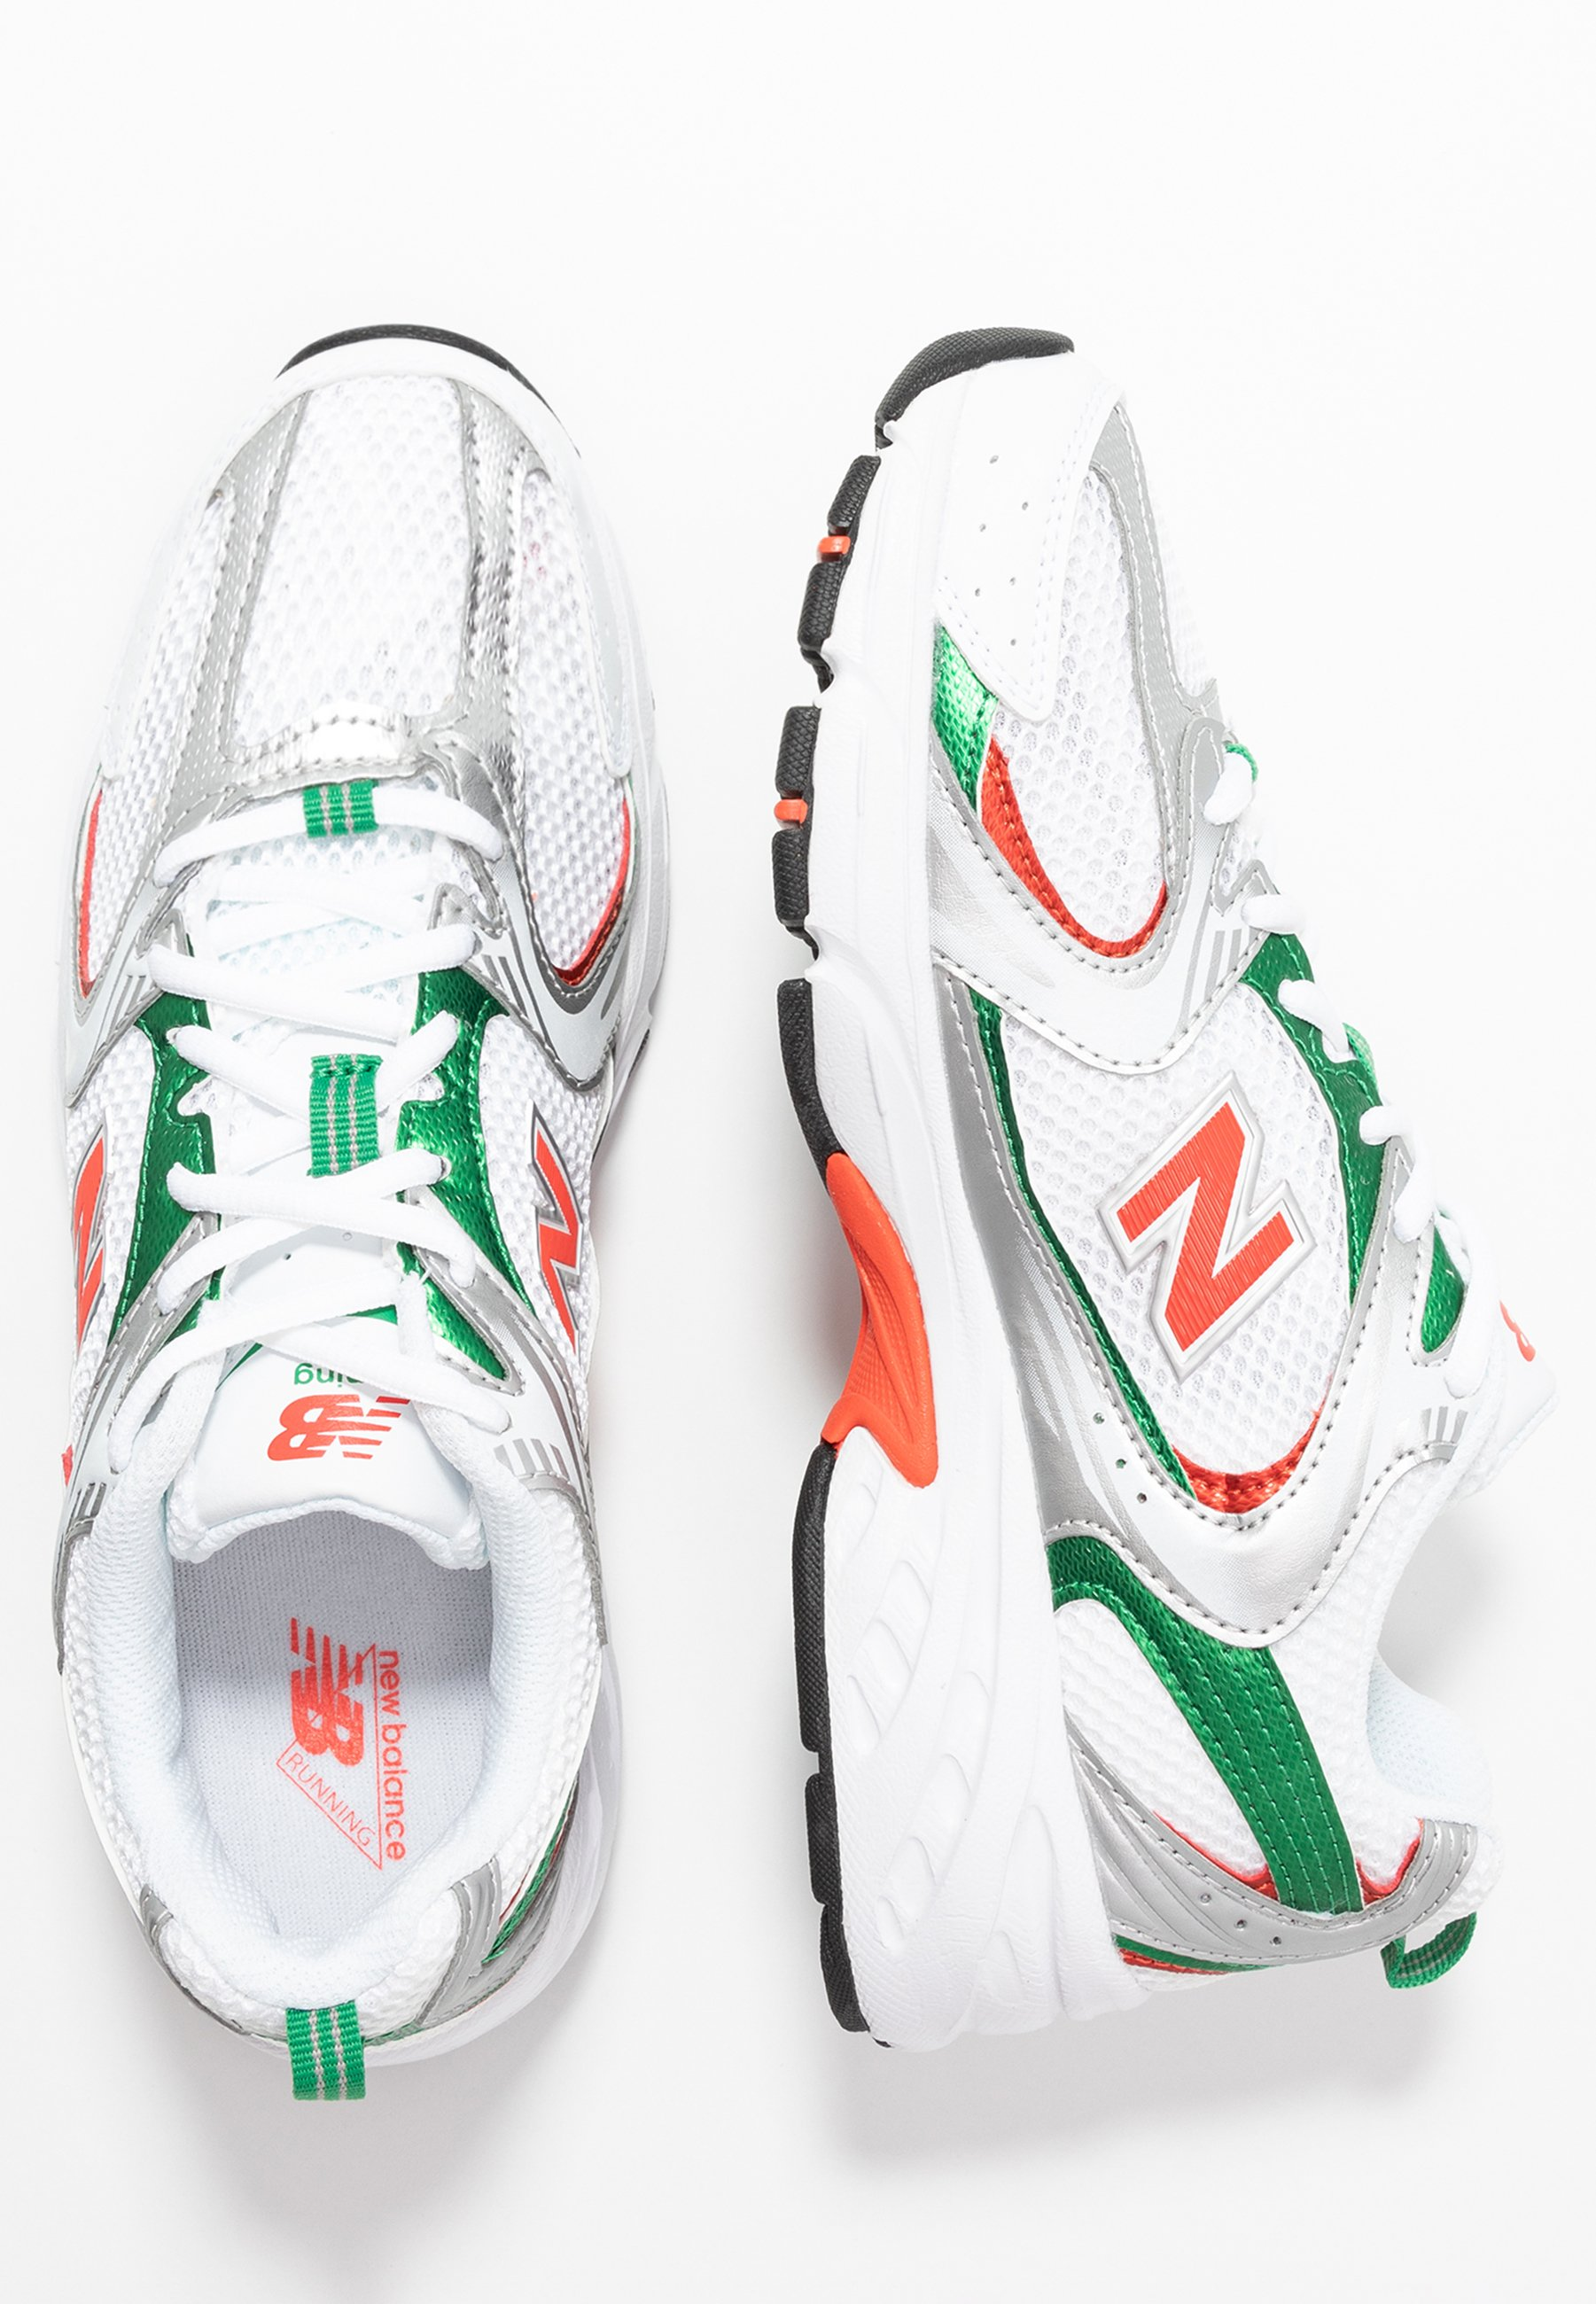 MR530 - Sneaker low - white/green/orange